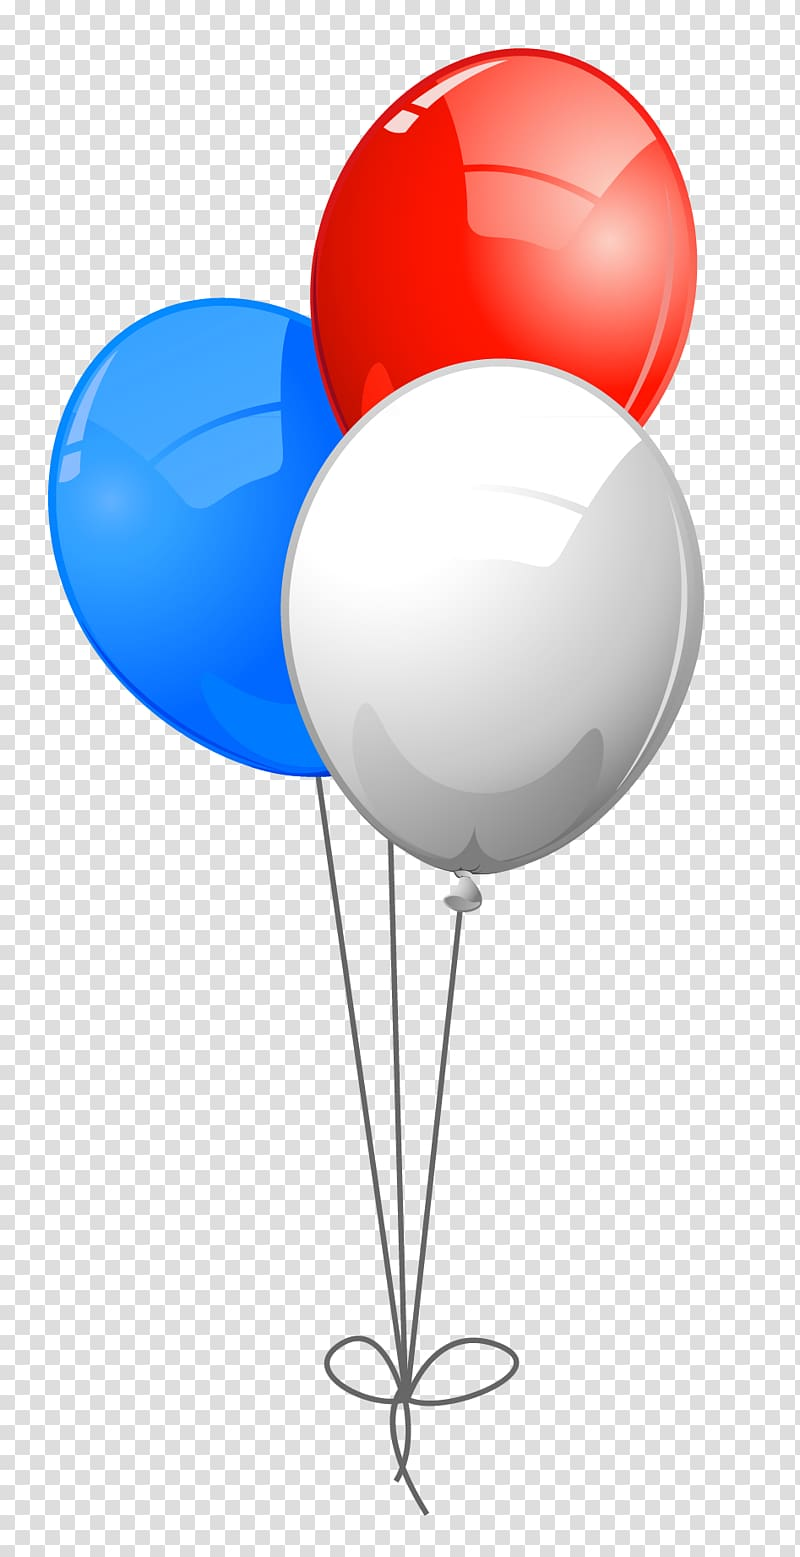 Three white, red, and blue balloons illustration, Blue Balloon Red ... png royalty free stock